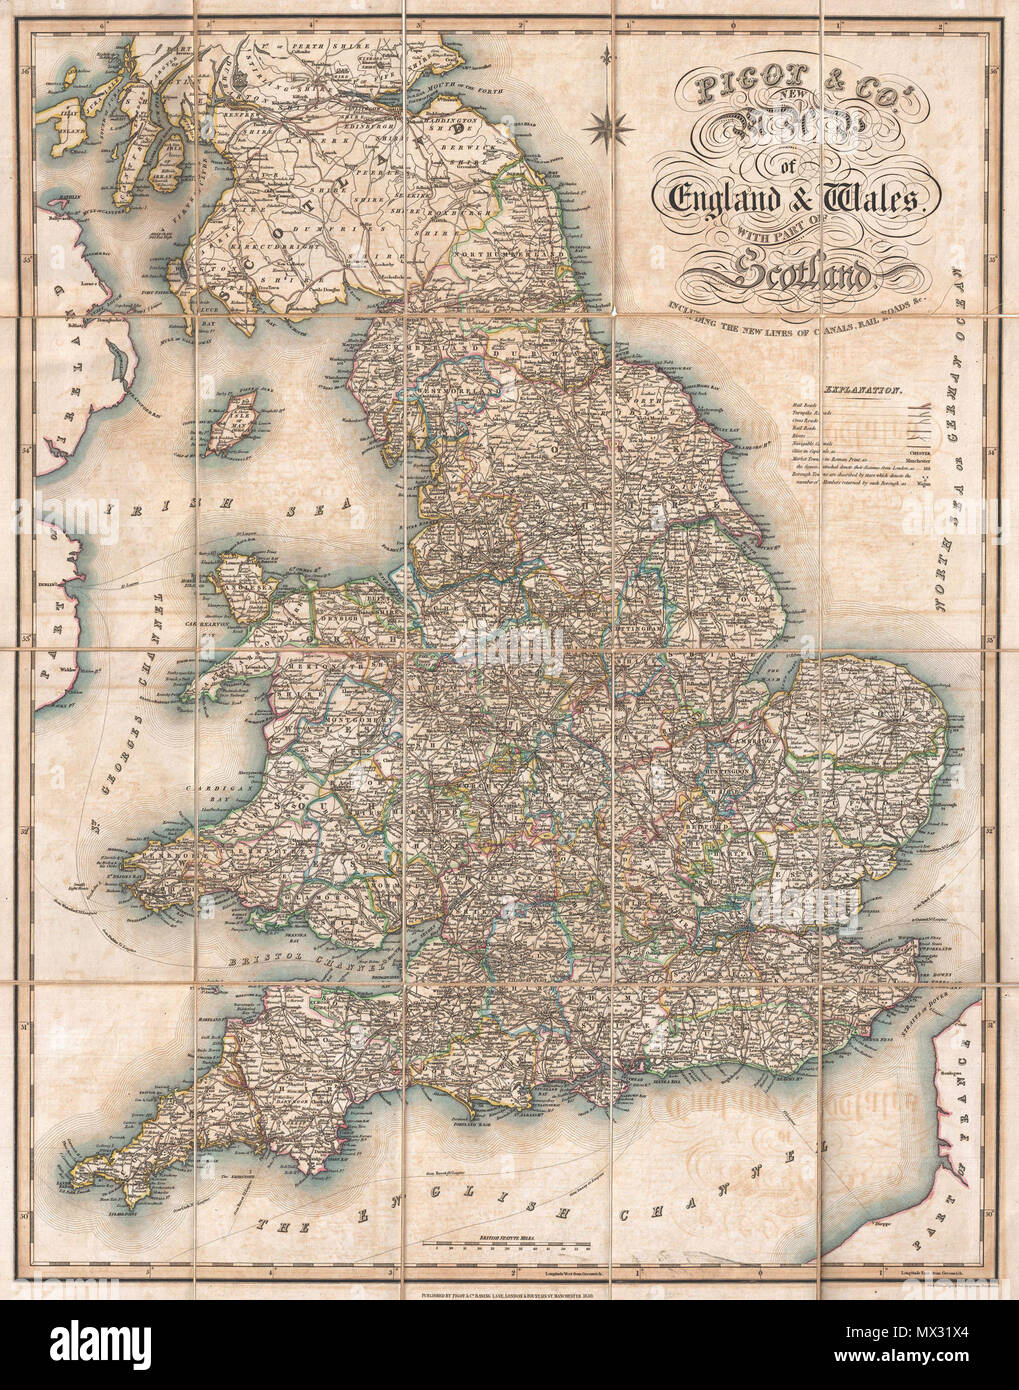 Map Of England And Wales With Cities.Pigot Co S New Map Of England Wales With Part Of Scotland